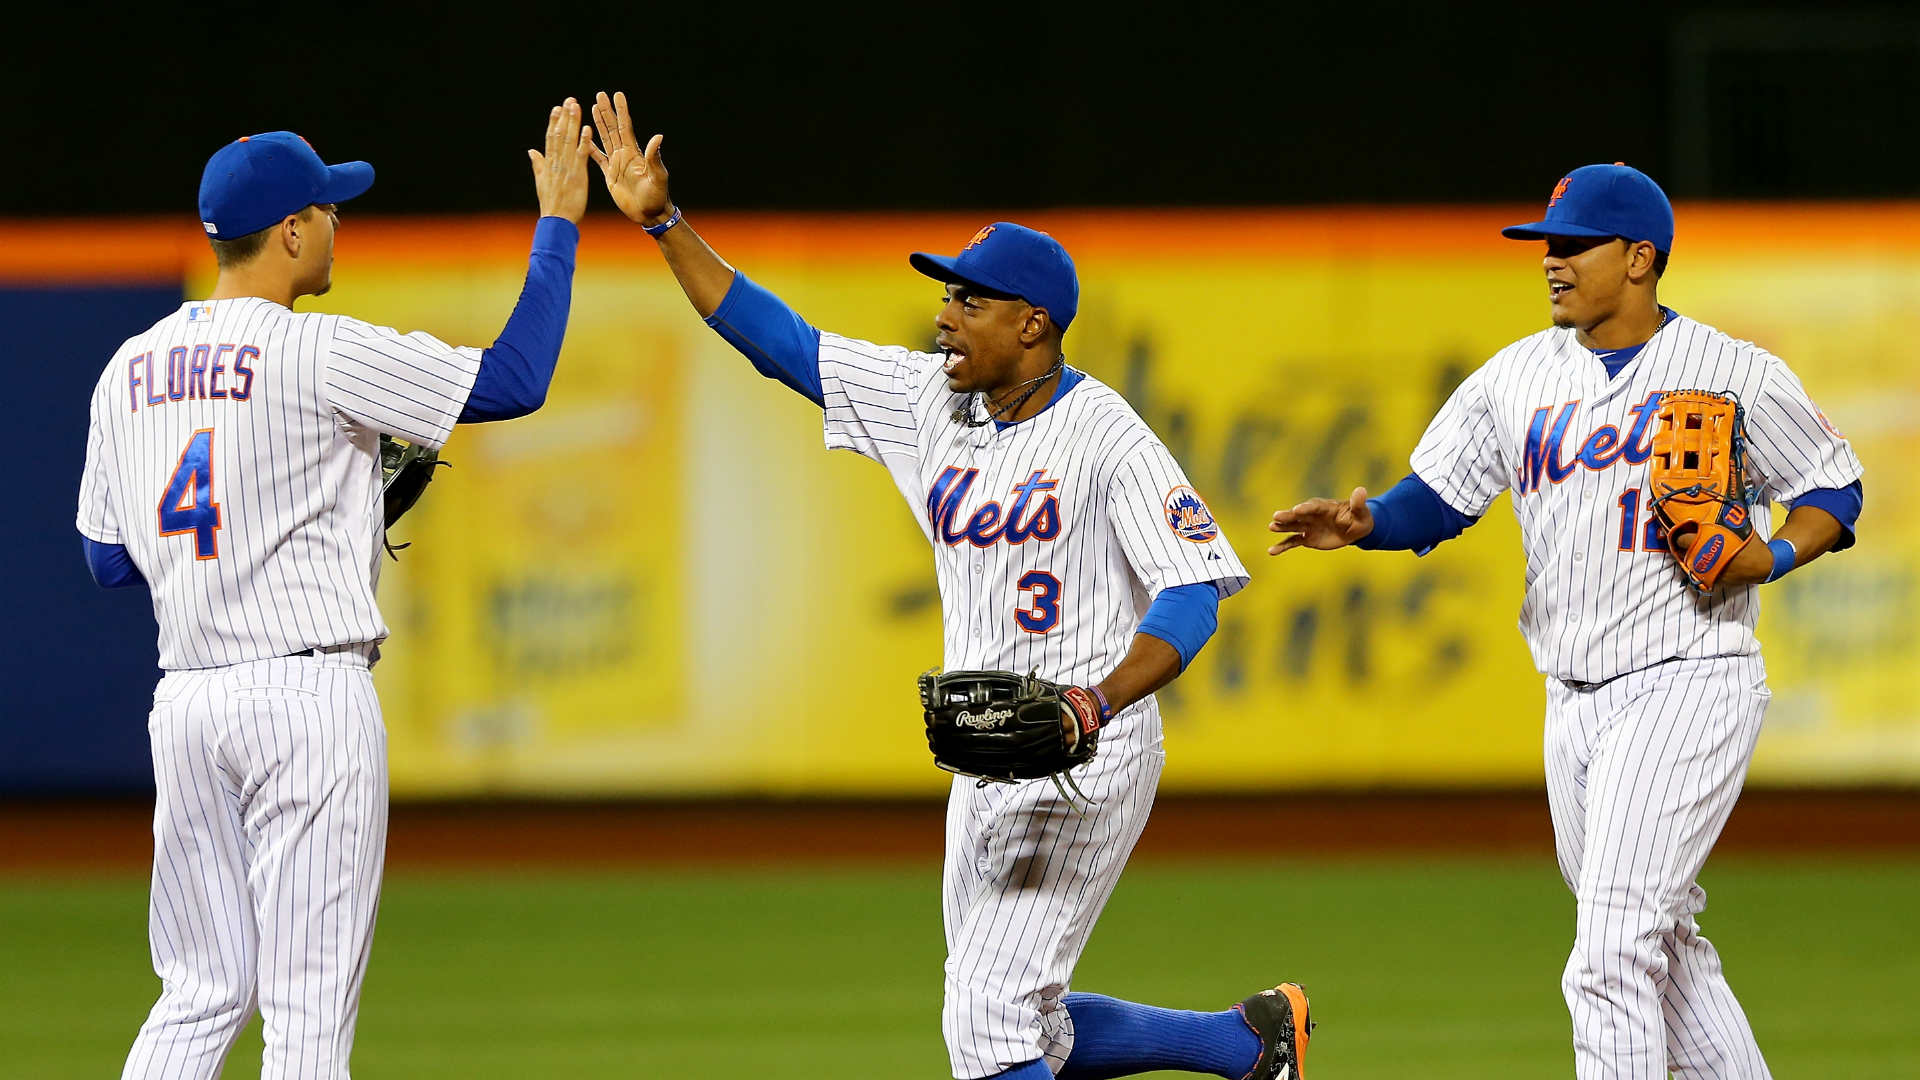 Cespedes, Syndergaard leave Mets' game vs Nats with injuries